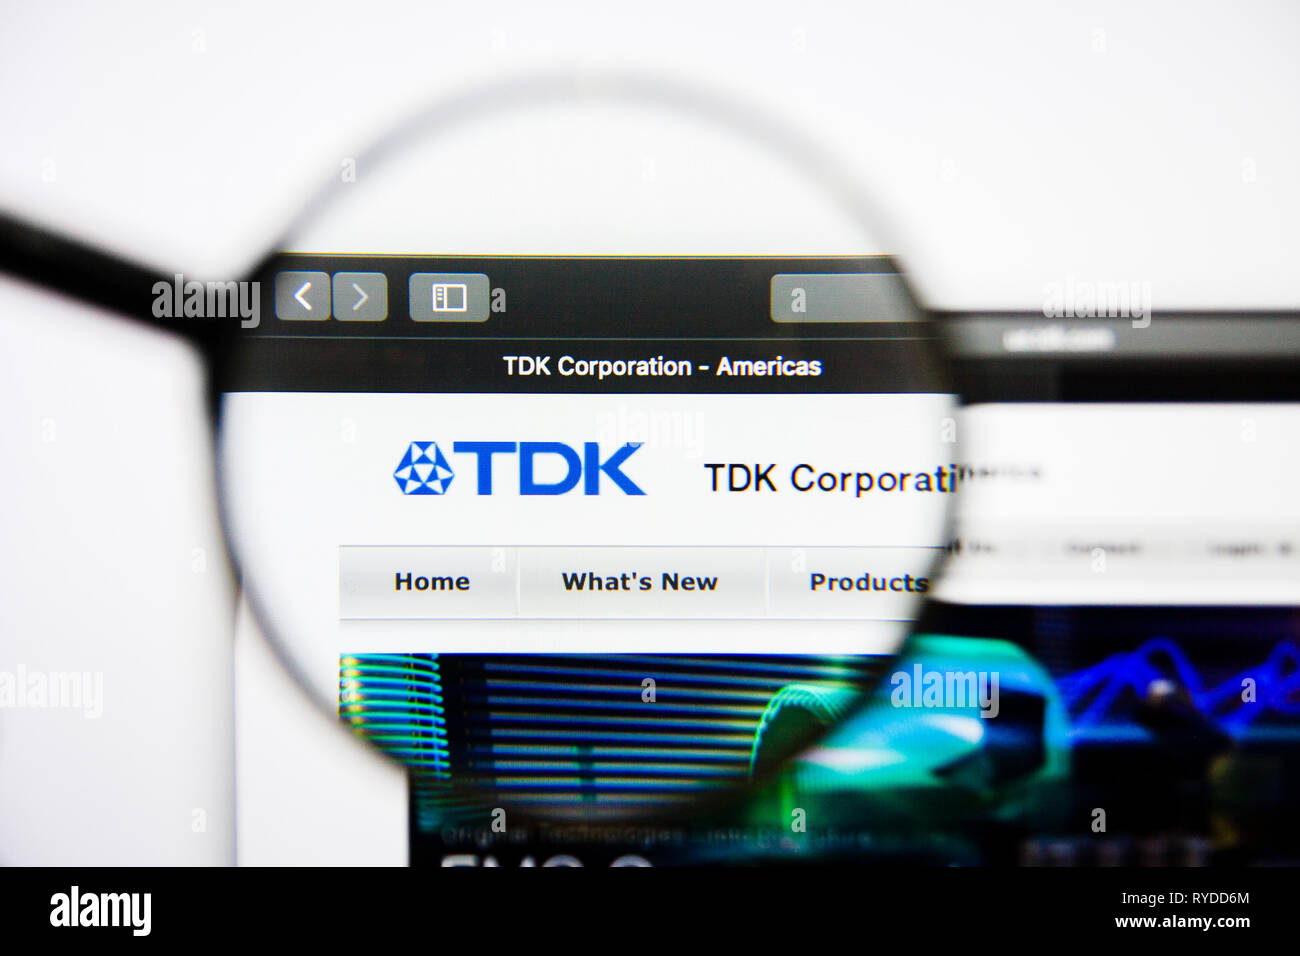 Los Angeles, California, USA - 25 January 2019: TDK website homepage. TDK logo visible on screen. - Stock Image